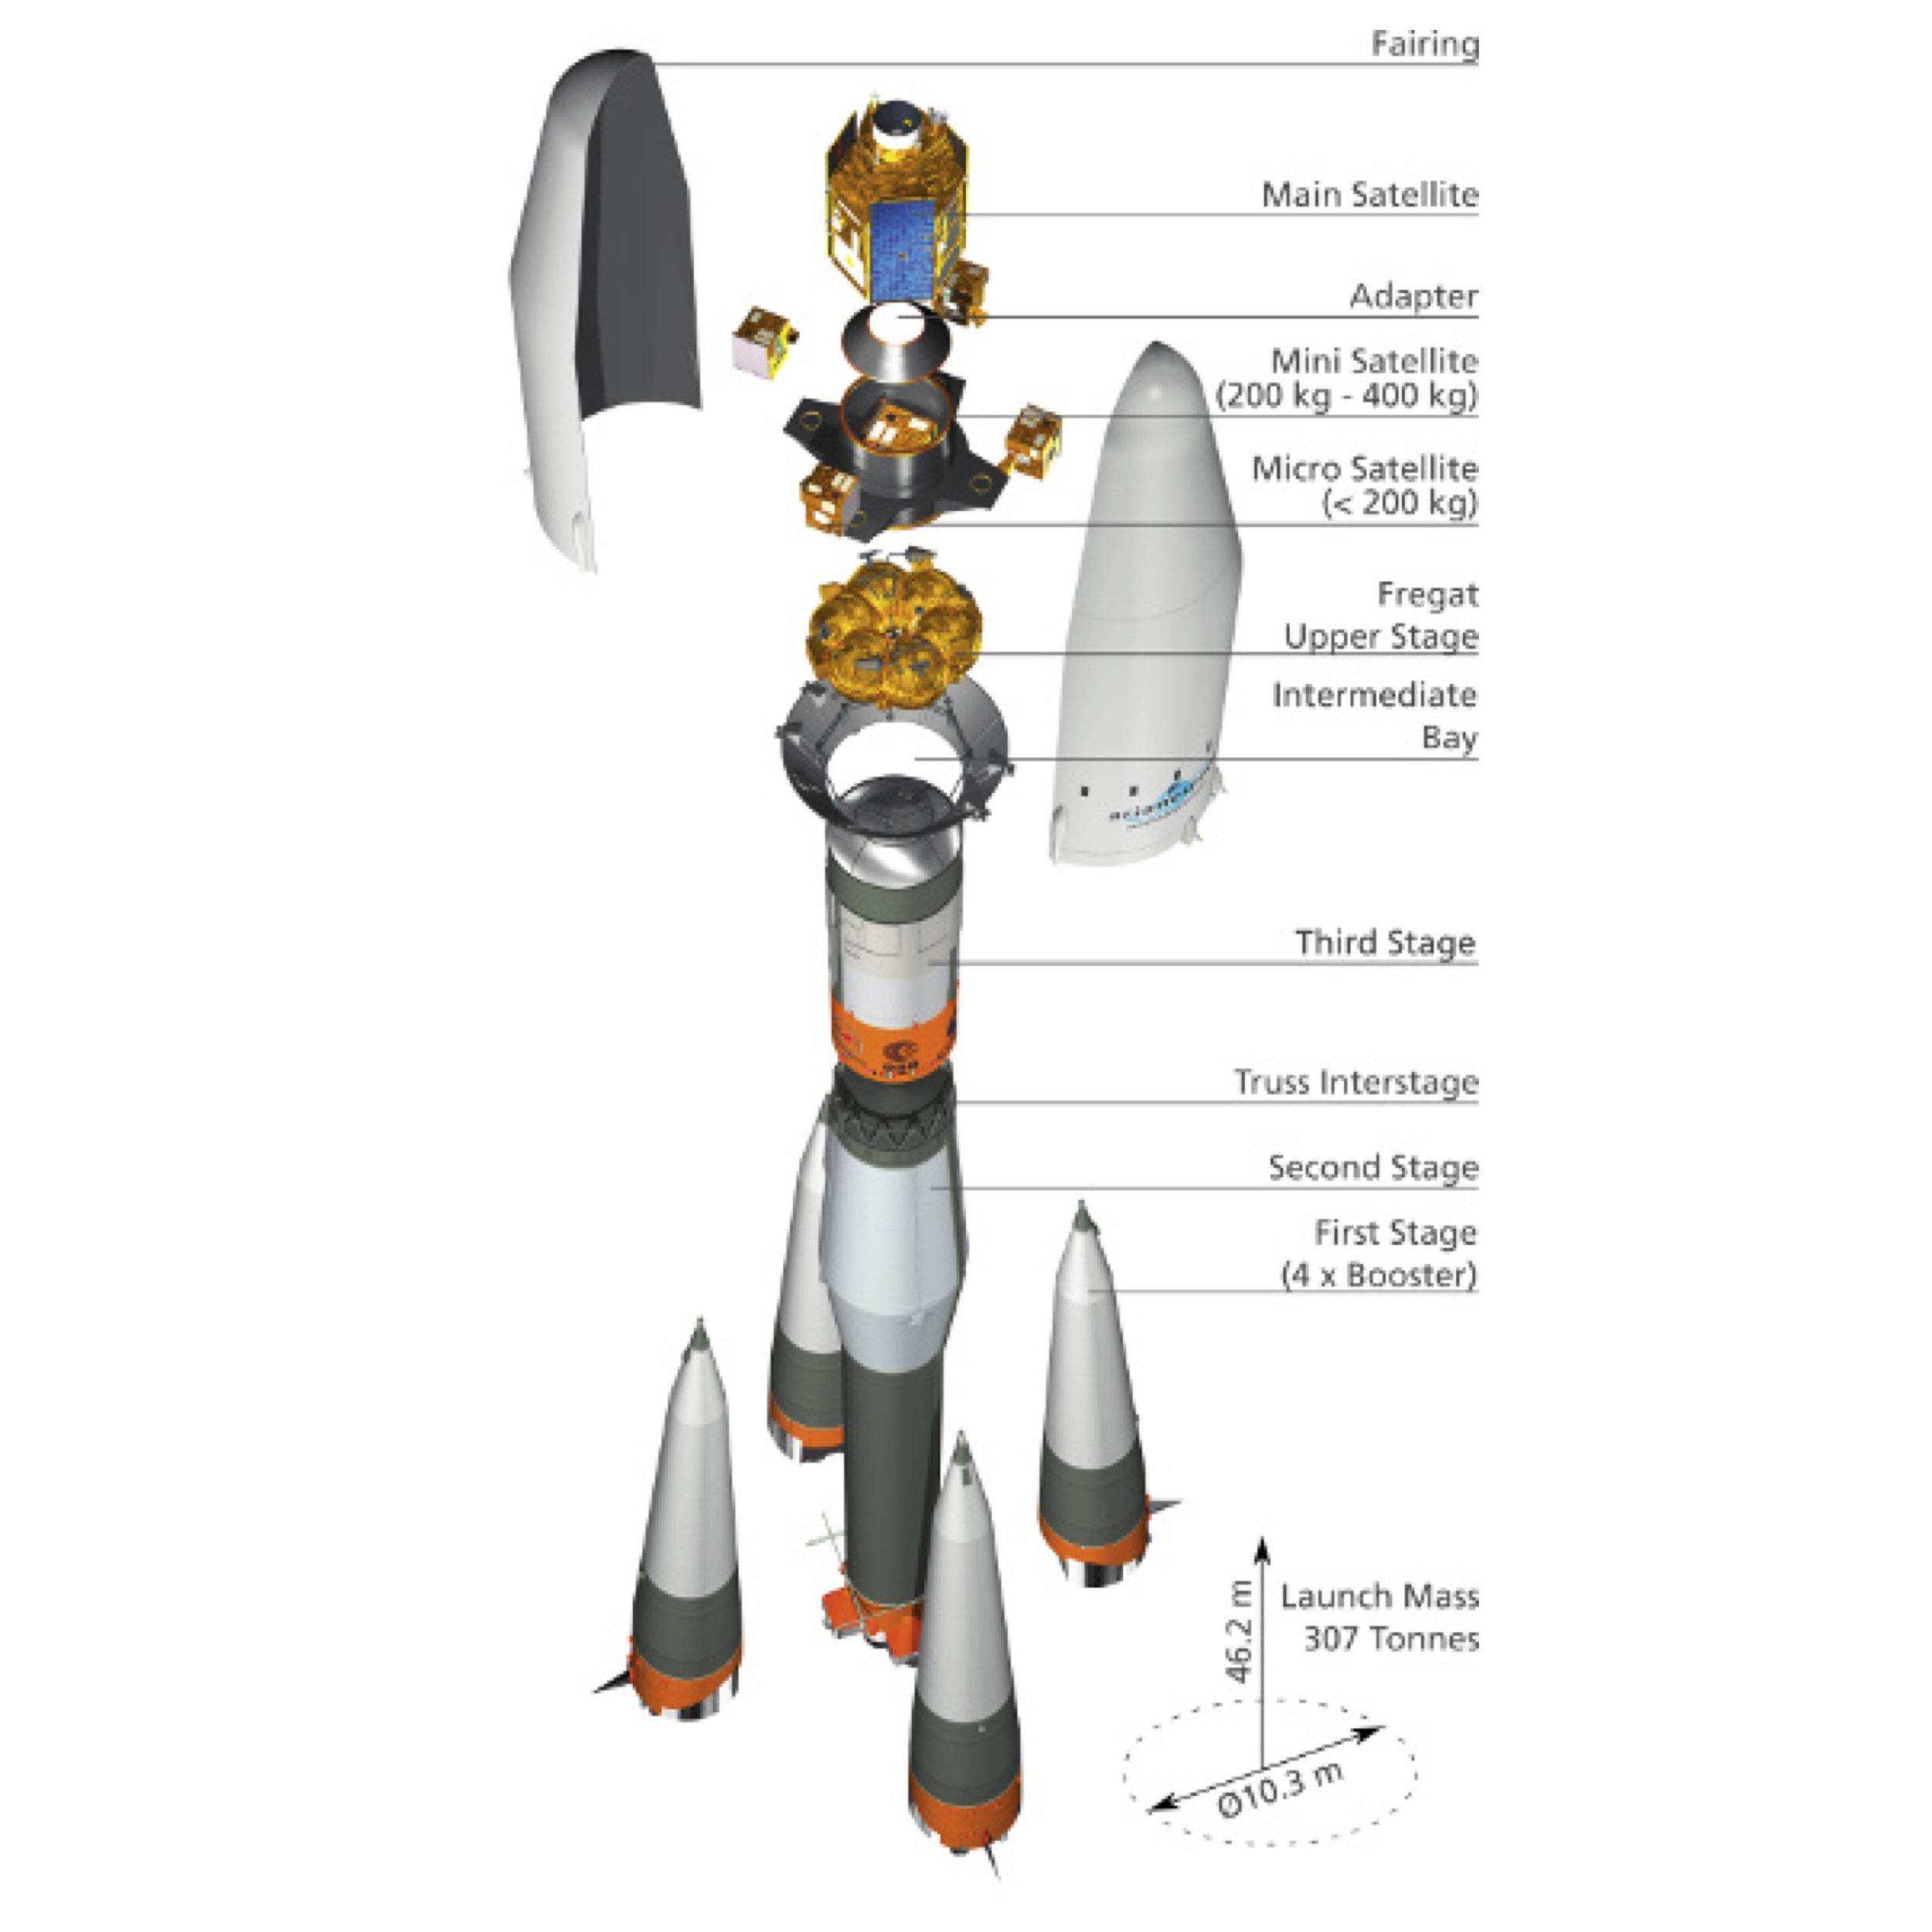 A Fregat upper stage will carry the satellite into orbit. - The SoyuzFG configuration uses Fregat upper stage to carry especially large payloads into varying orbits.